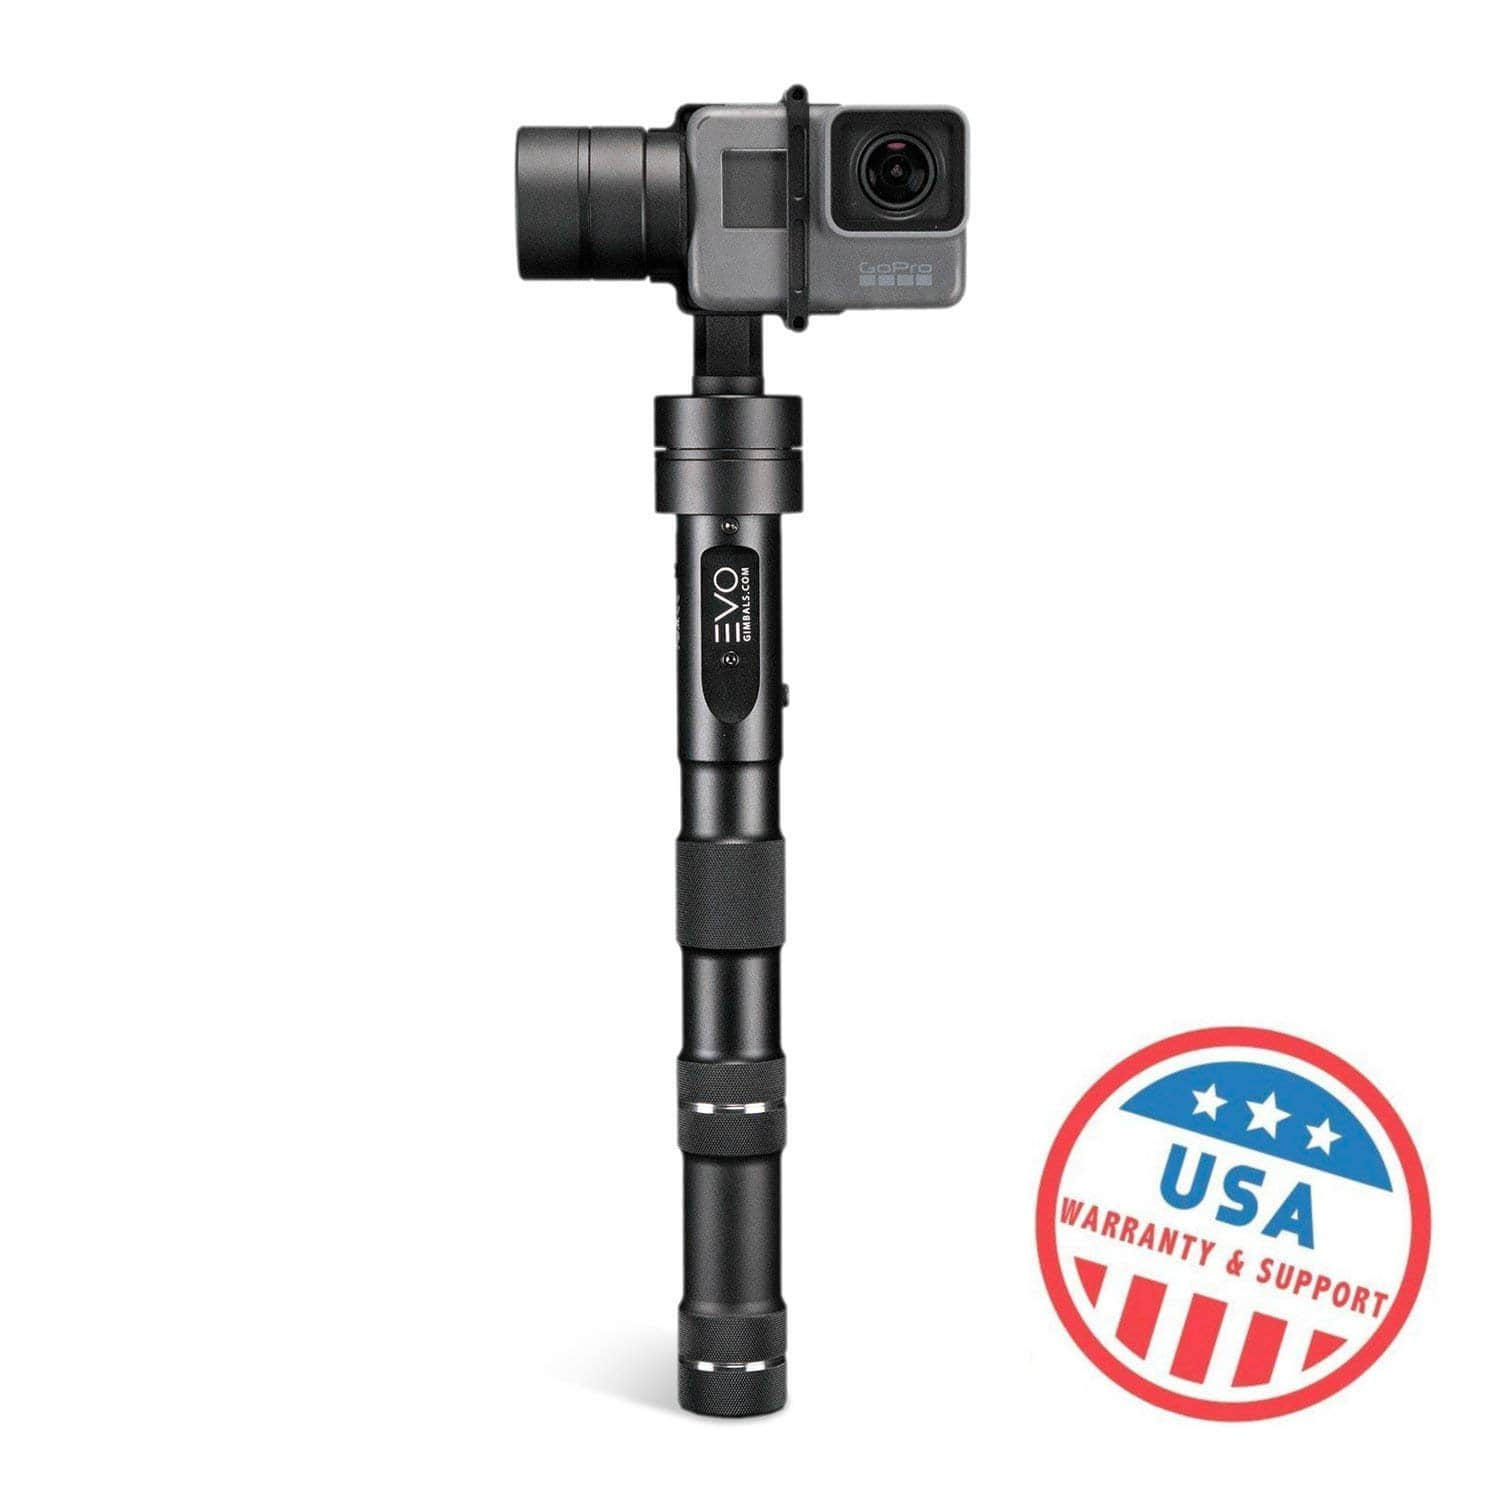 Best GoPro gimbal Allowing You Shoot GoPro videos like a pro